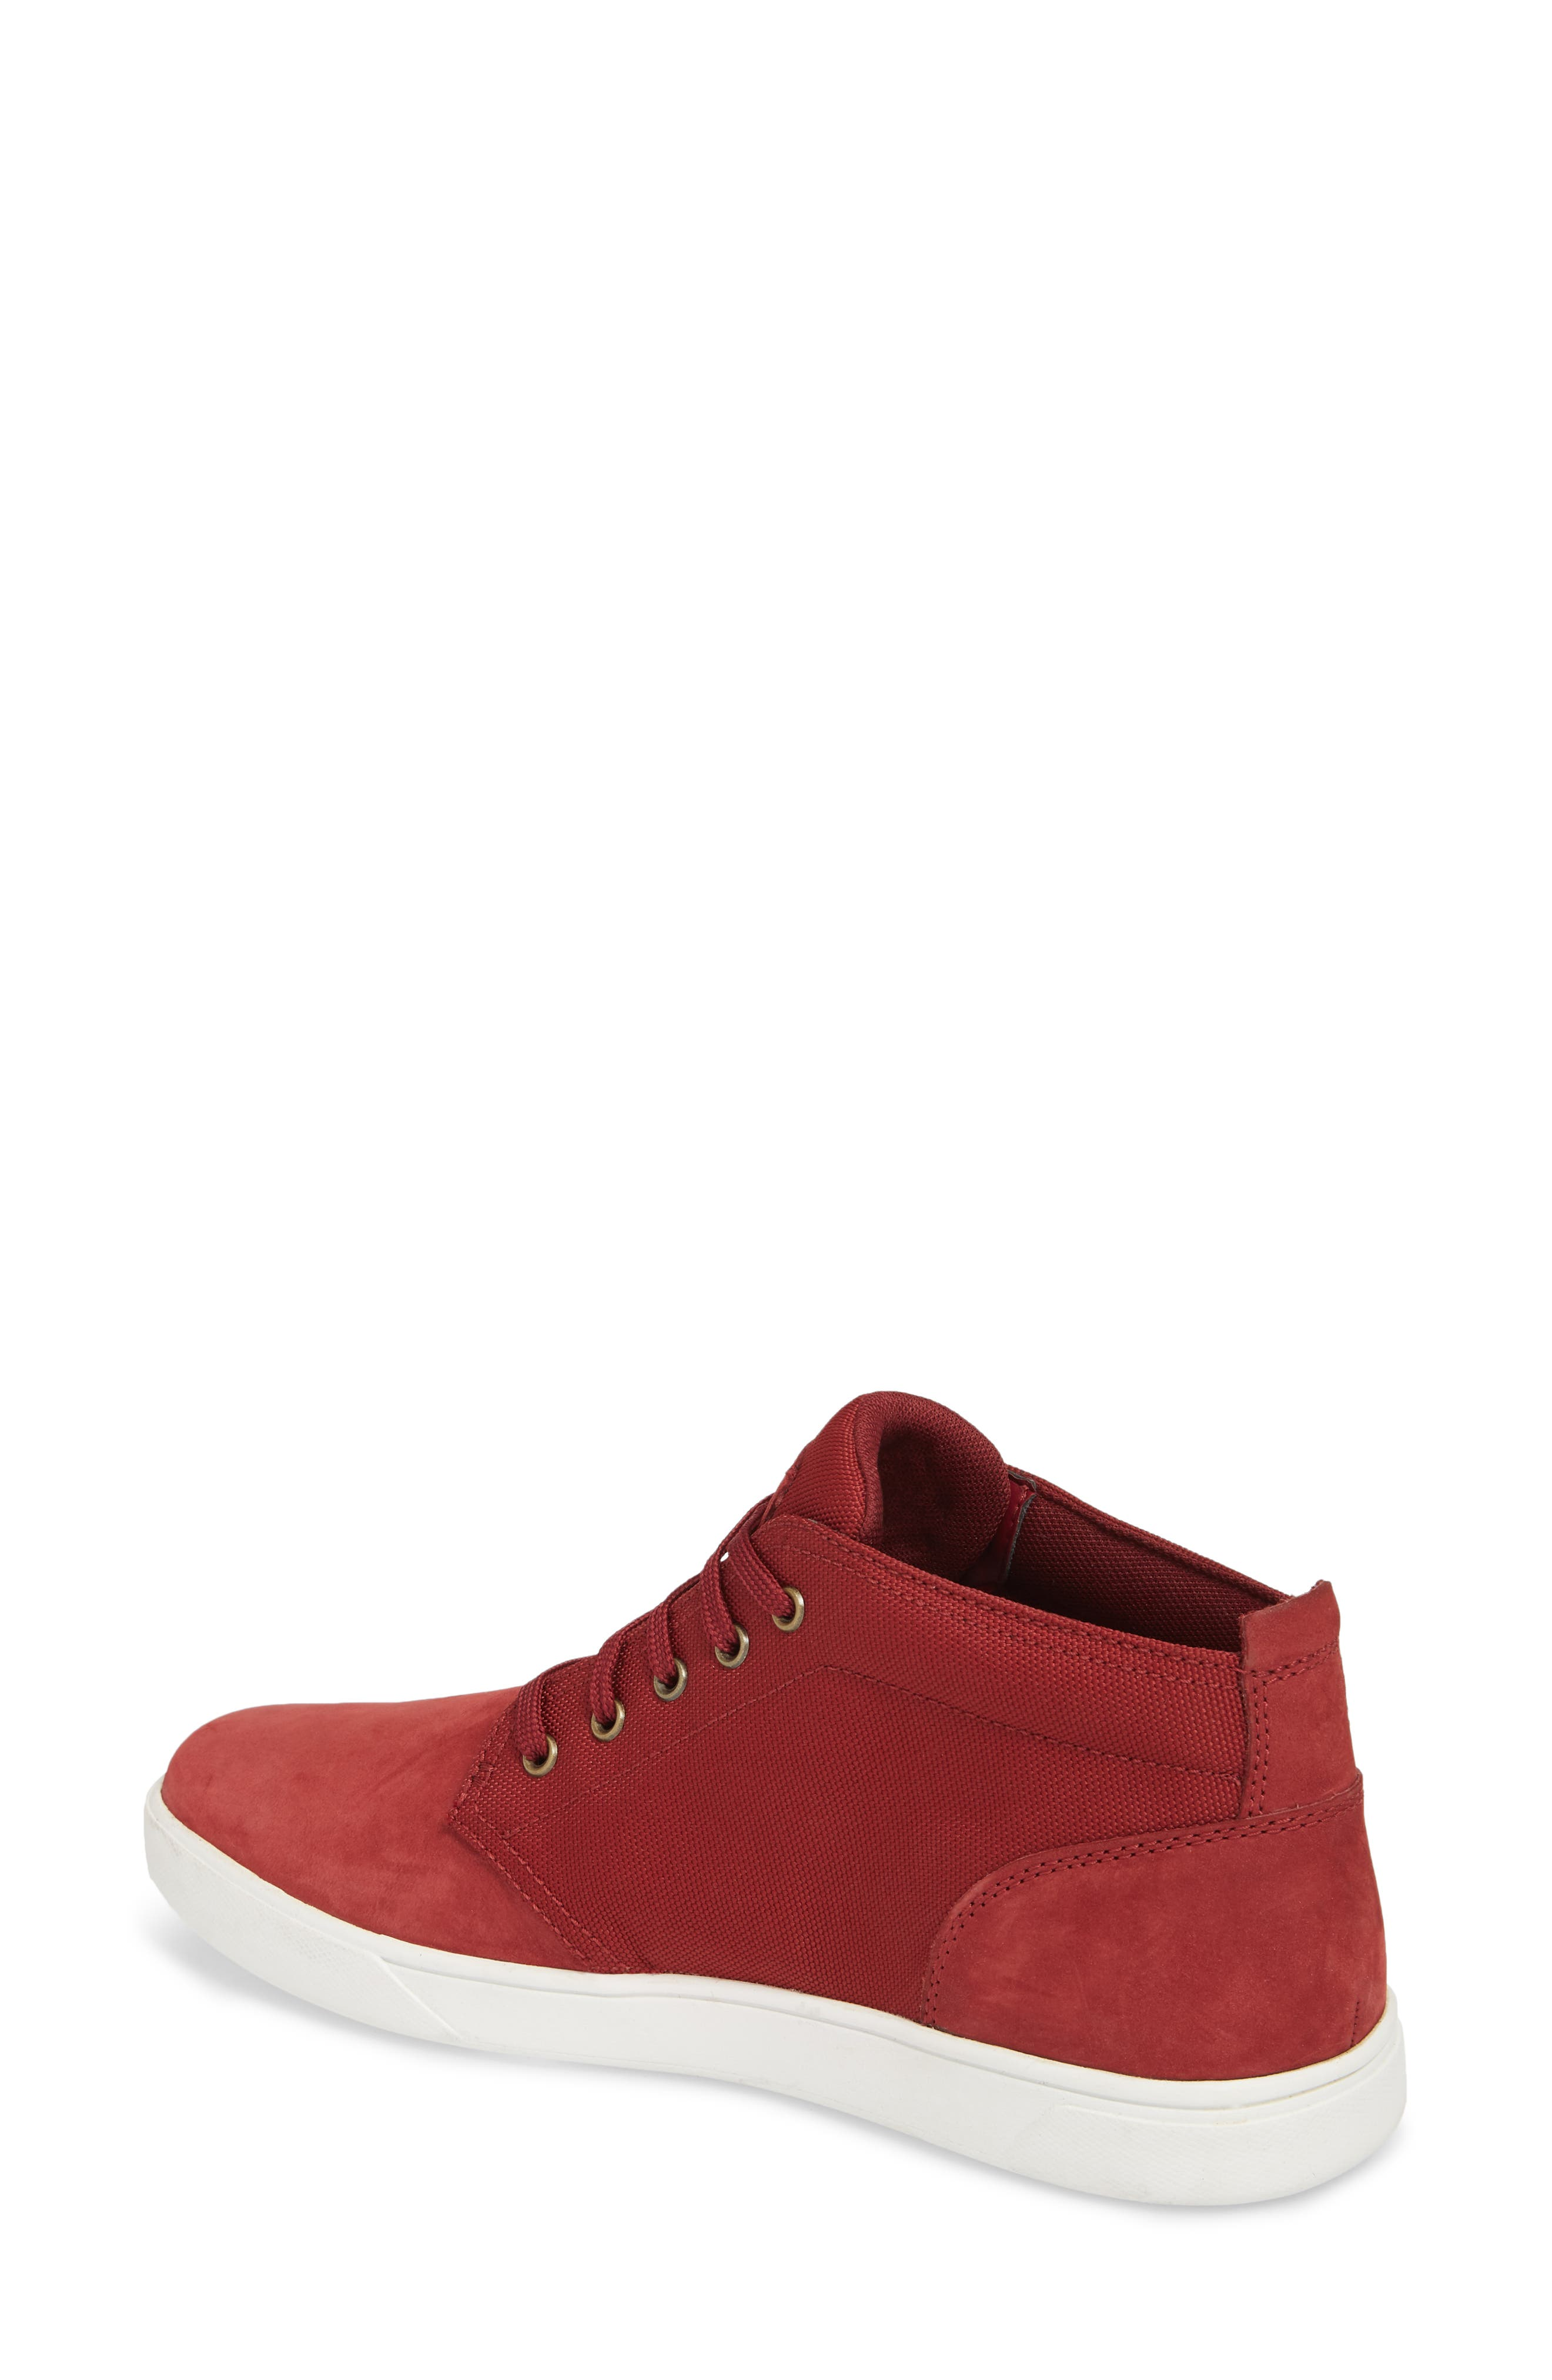 Earthkeepers<sup>™</sup> 'Groveton' Chukka Sneaker,                             Alternate thumbnail 2, color,                             Pomegranate Nubuck